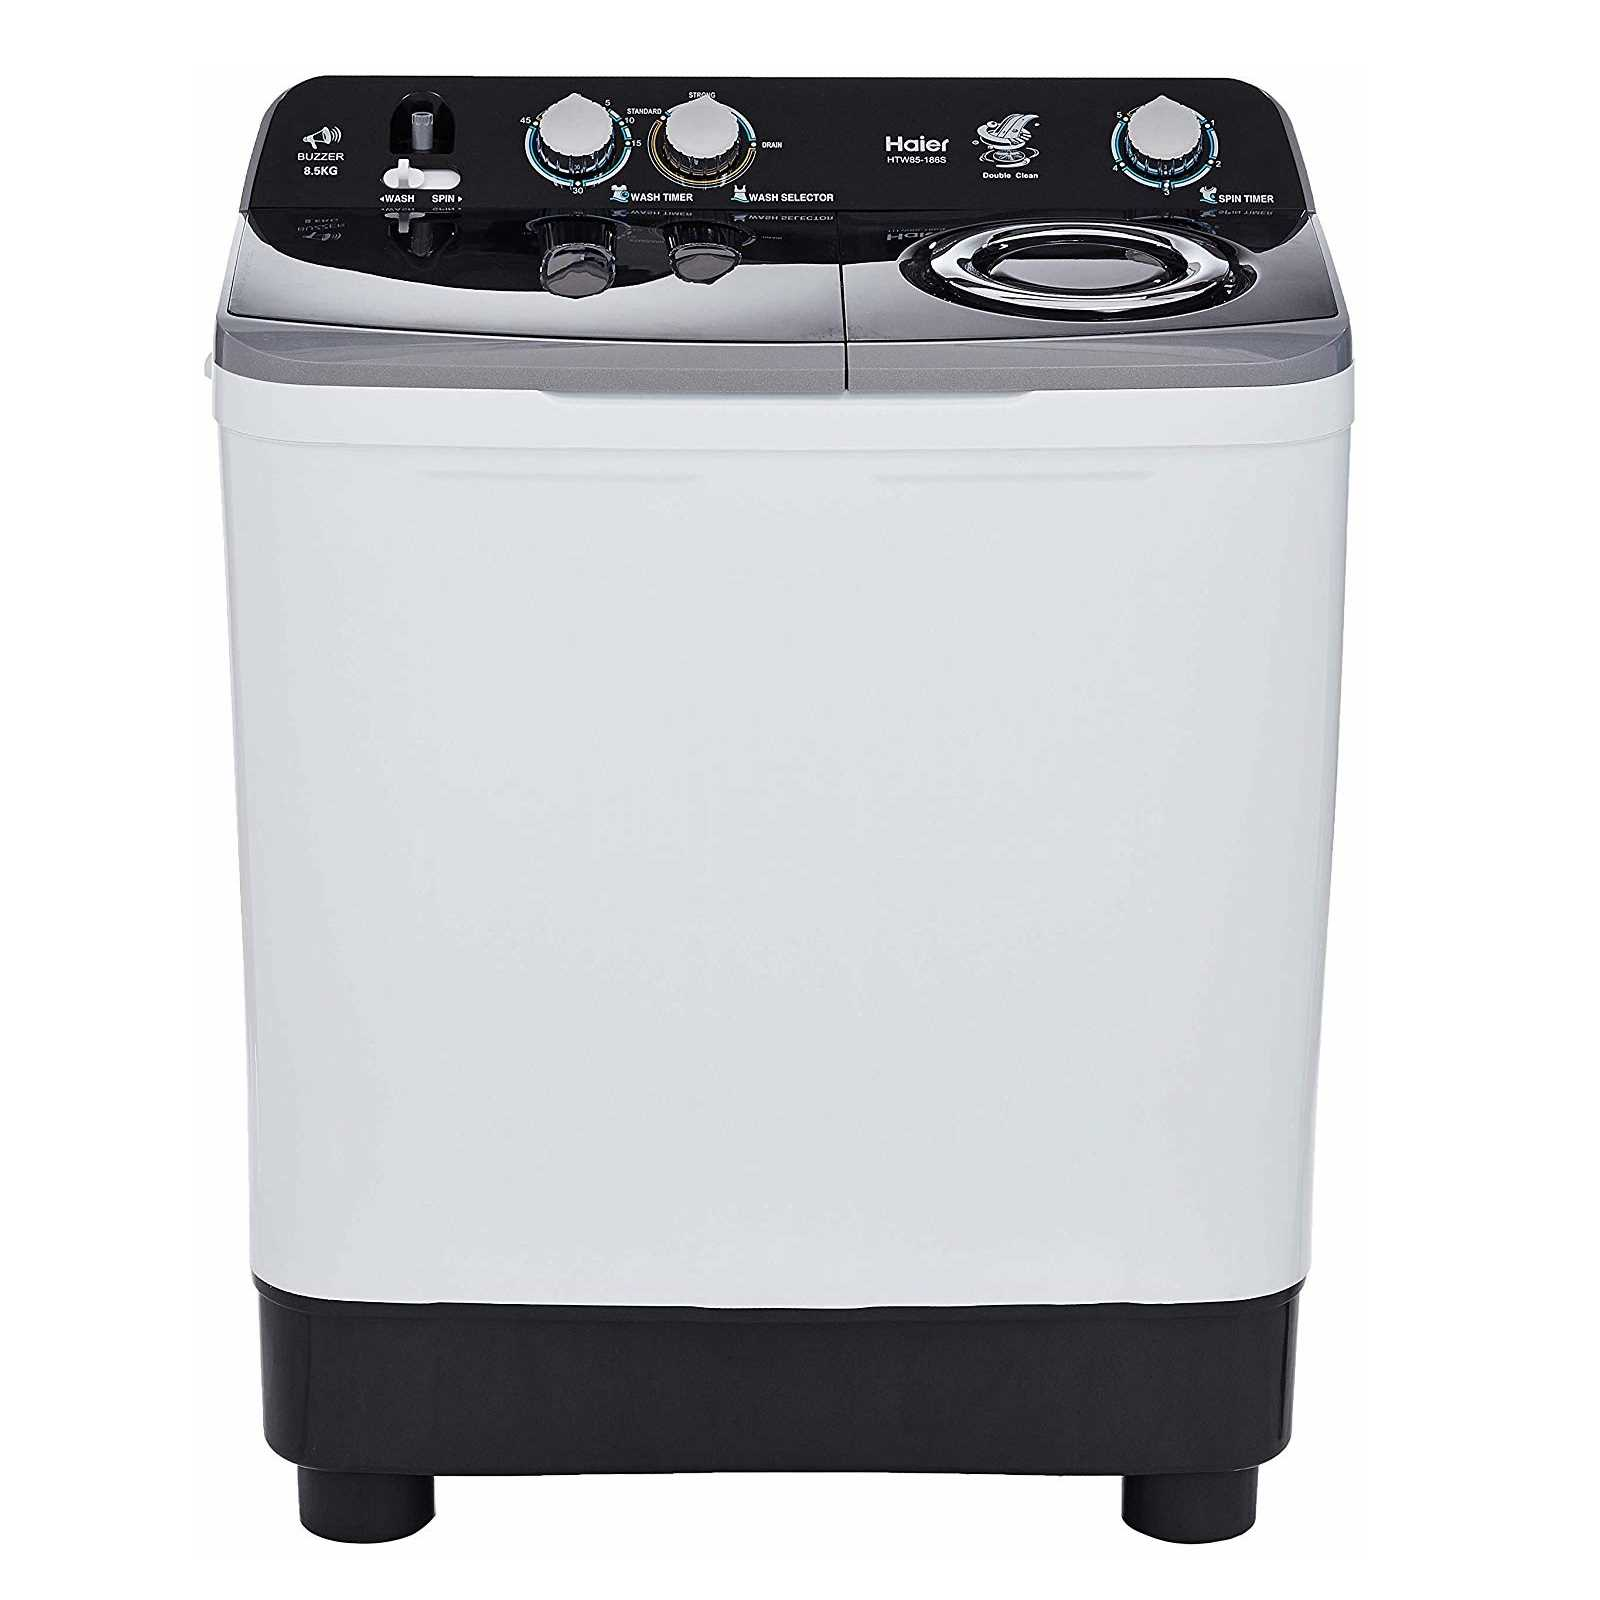 Haier HTW85-186S 8.5 Kg Semi Automatic Top Loading Washing Machine